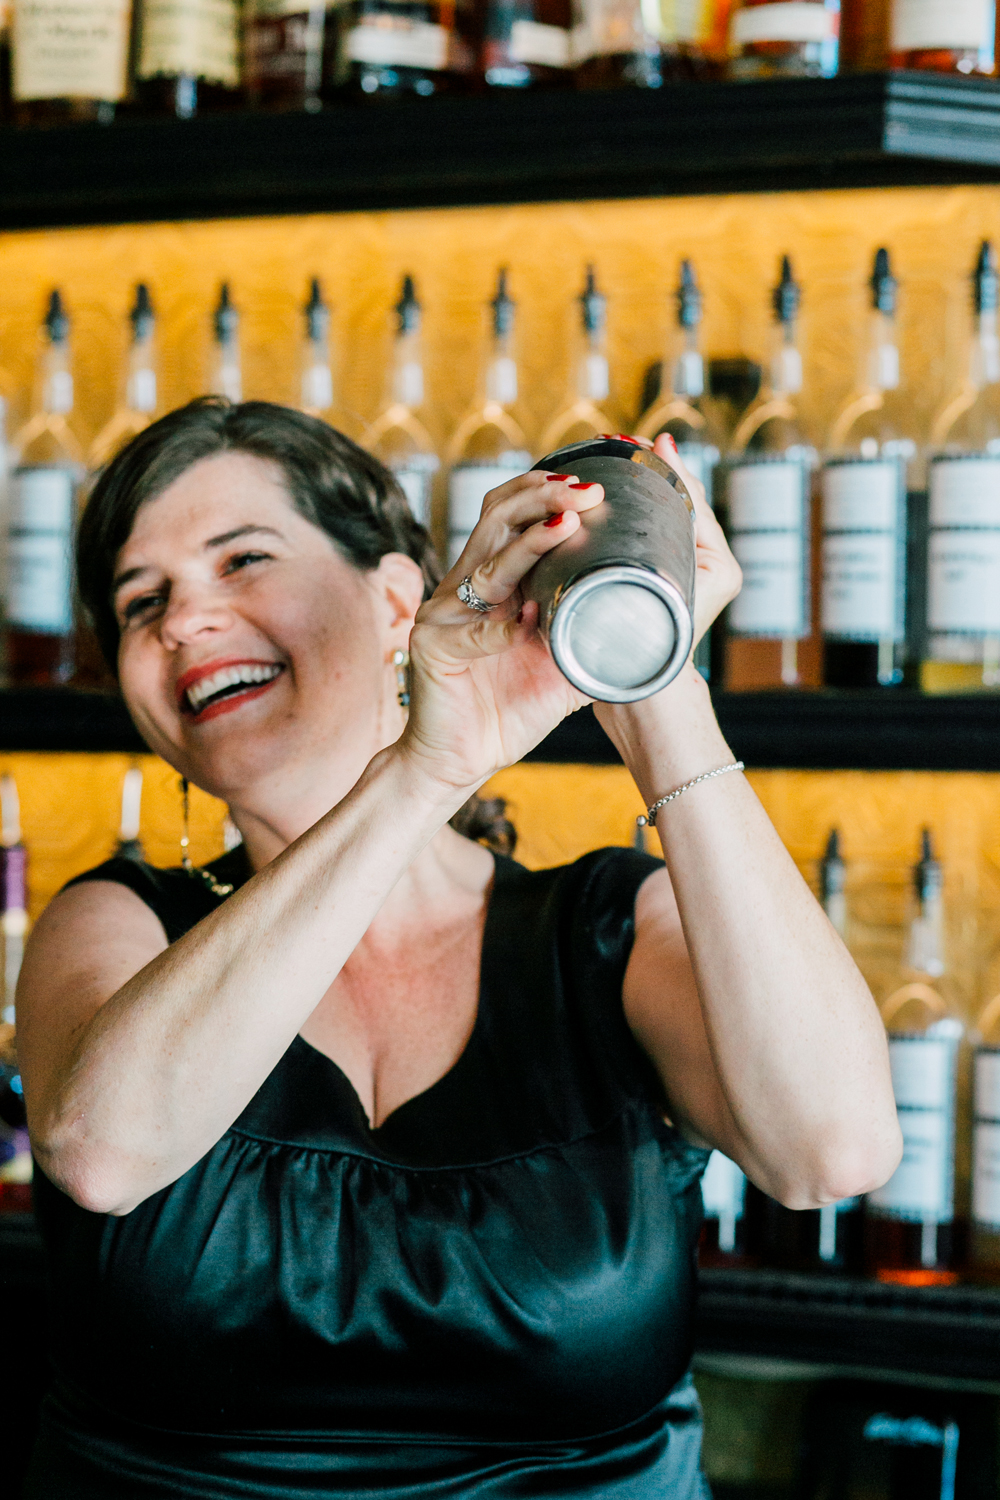 005-bellingham-food-stylist-food-photographer-katheryn-moran-photography-galloways-cocktail-bar-fairhaven.jpg